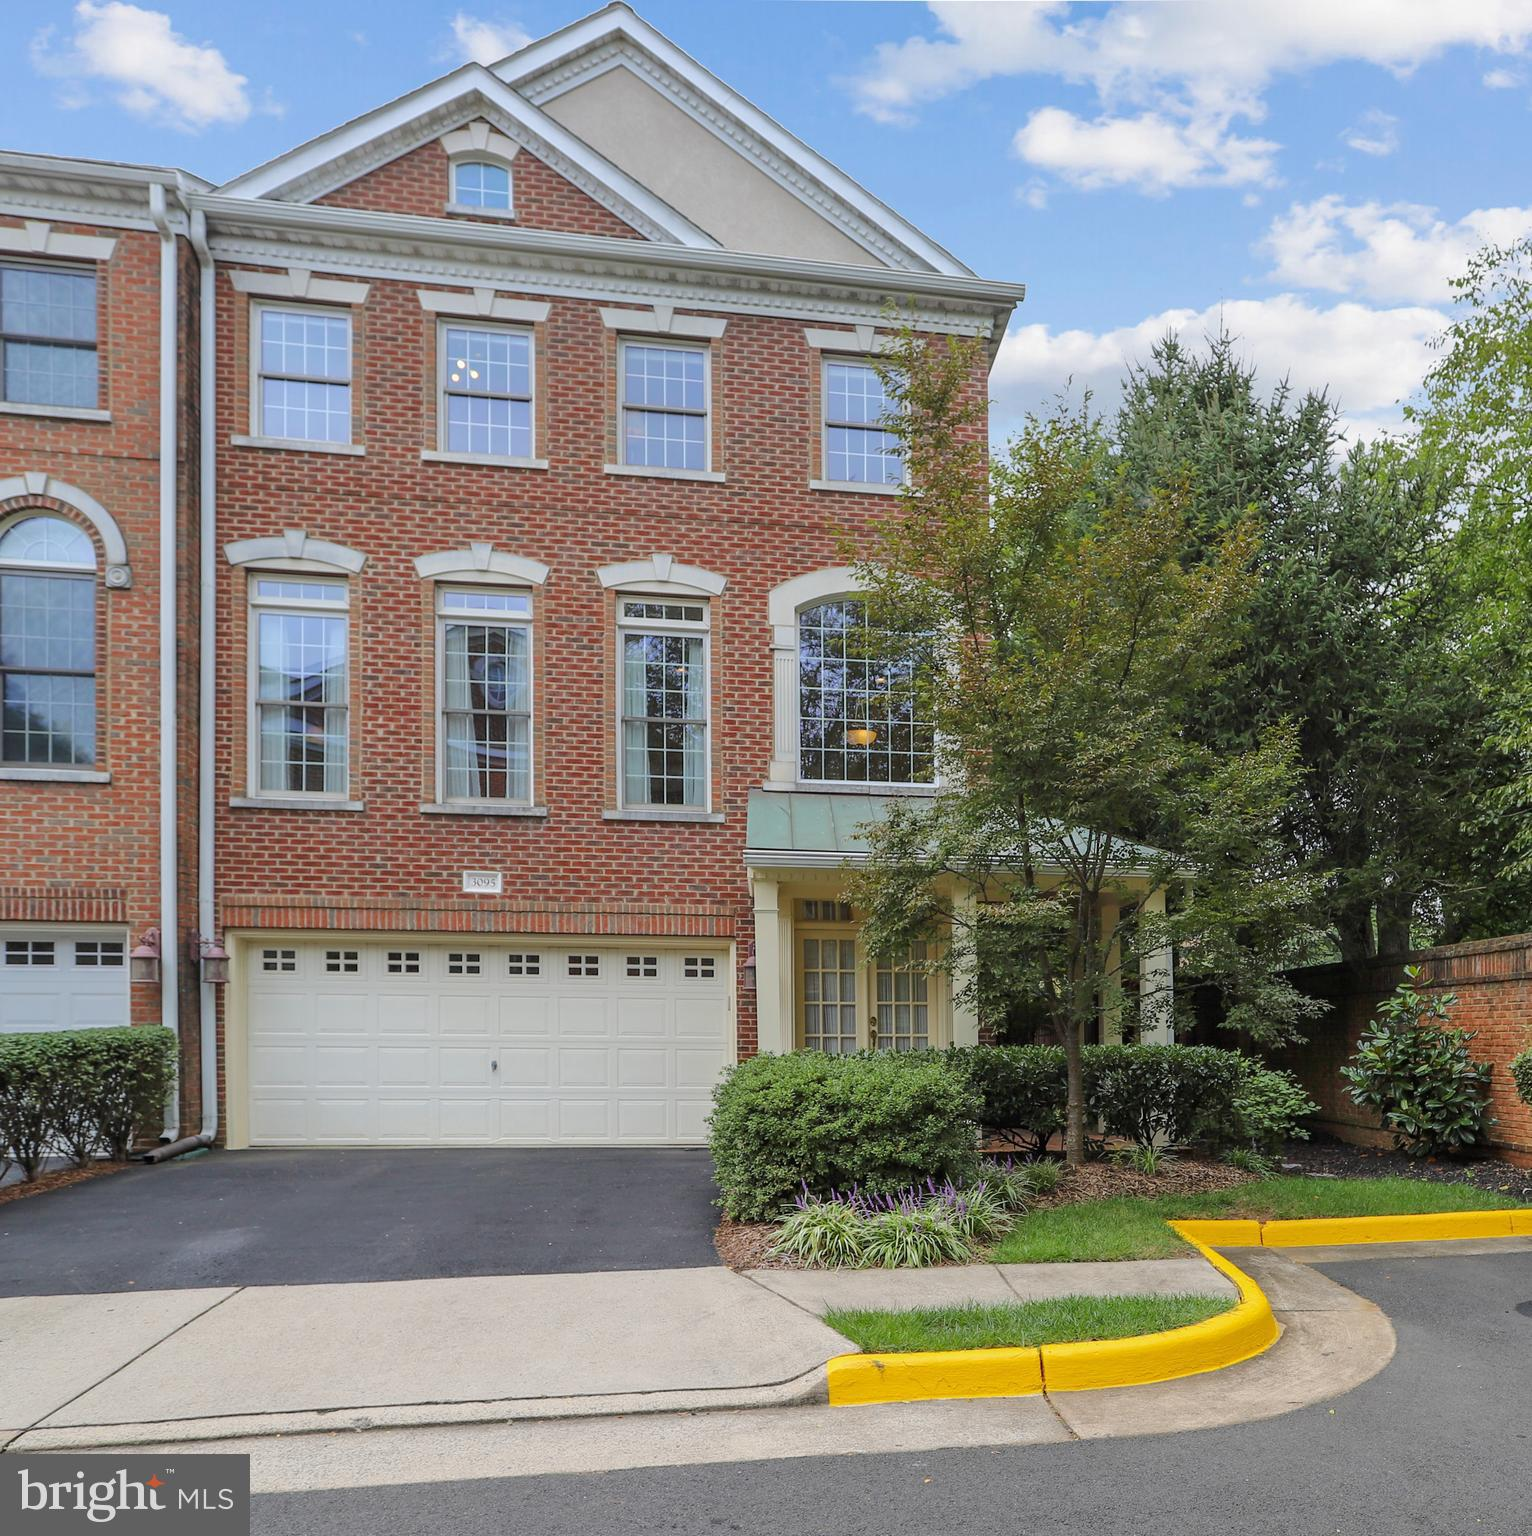 Don't miss this beautiful, spacious and sun-filled 3 BR, 3.5 bath all brick, end-unit town home in heart of Oakton!  This executive style town home boasts tall ceilings, large windows, hardwood floors, a 2 car garage with storage space, 2 zone HVAC and bedroom level laundry!  Open floor plan with gourmet kitchen, double ovens, breakfast bar, large pantry and double ovens and gas stove, dining room, living room with gas fire place and family room all on the main level.  Freshly painted  deck off living room with stairs to the slate patio, pond & waterfall feature and wonderfully landscaped, fenced yard. Upper level has a spacious master bedroom suite with walk in closet, tray ceiling. large bay window and beautifully updated spa-like master bath with dual sinks and separate bath and shower.  Two more bedrooms and finely updated 2nd bath also on the upper level.  Lower level has a private fully finished walk out basement with full bath and 2nd gas fireplace is perfect for an office, bedroom or home theater!  Roof 2019  Walkable to shops, restaurants and a bus to Tysons.  Minutes to 66, 50 and to Vienna METRO and Oak Marr Rec Center.  Oakton HS Pyramid and less than 1 mile to Flint Hill, *Schedule via Showing Time, *Use Covid Precautions when showing